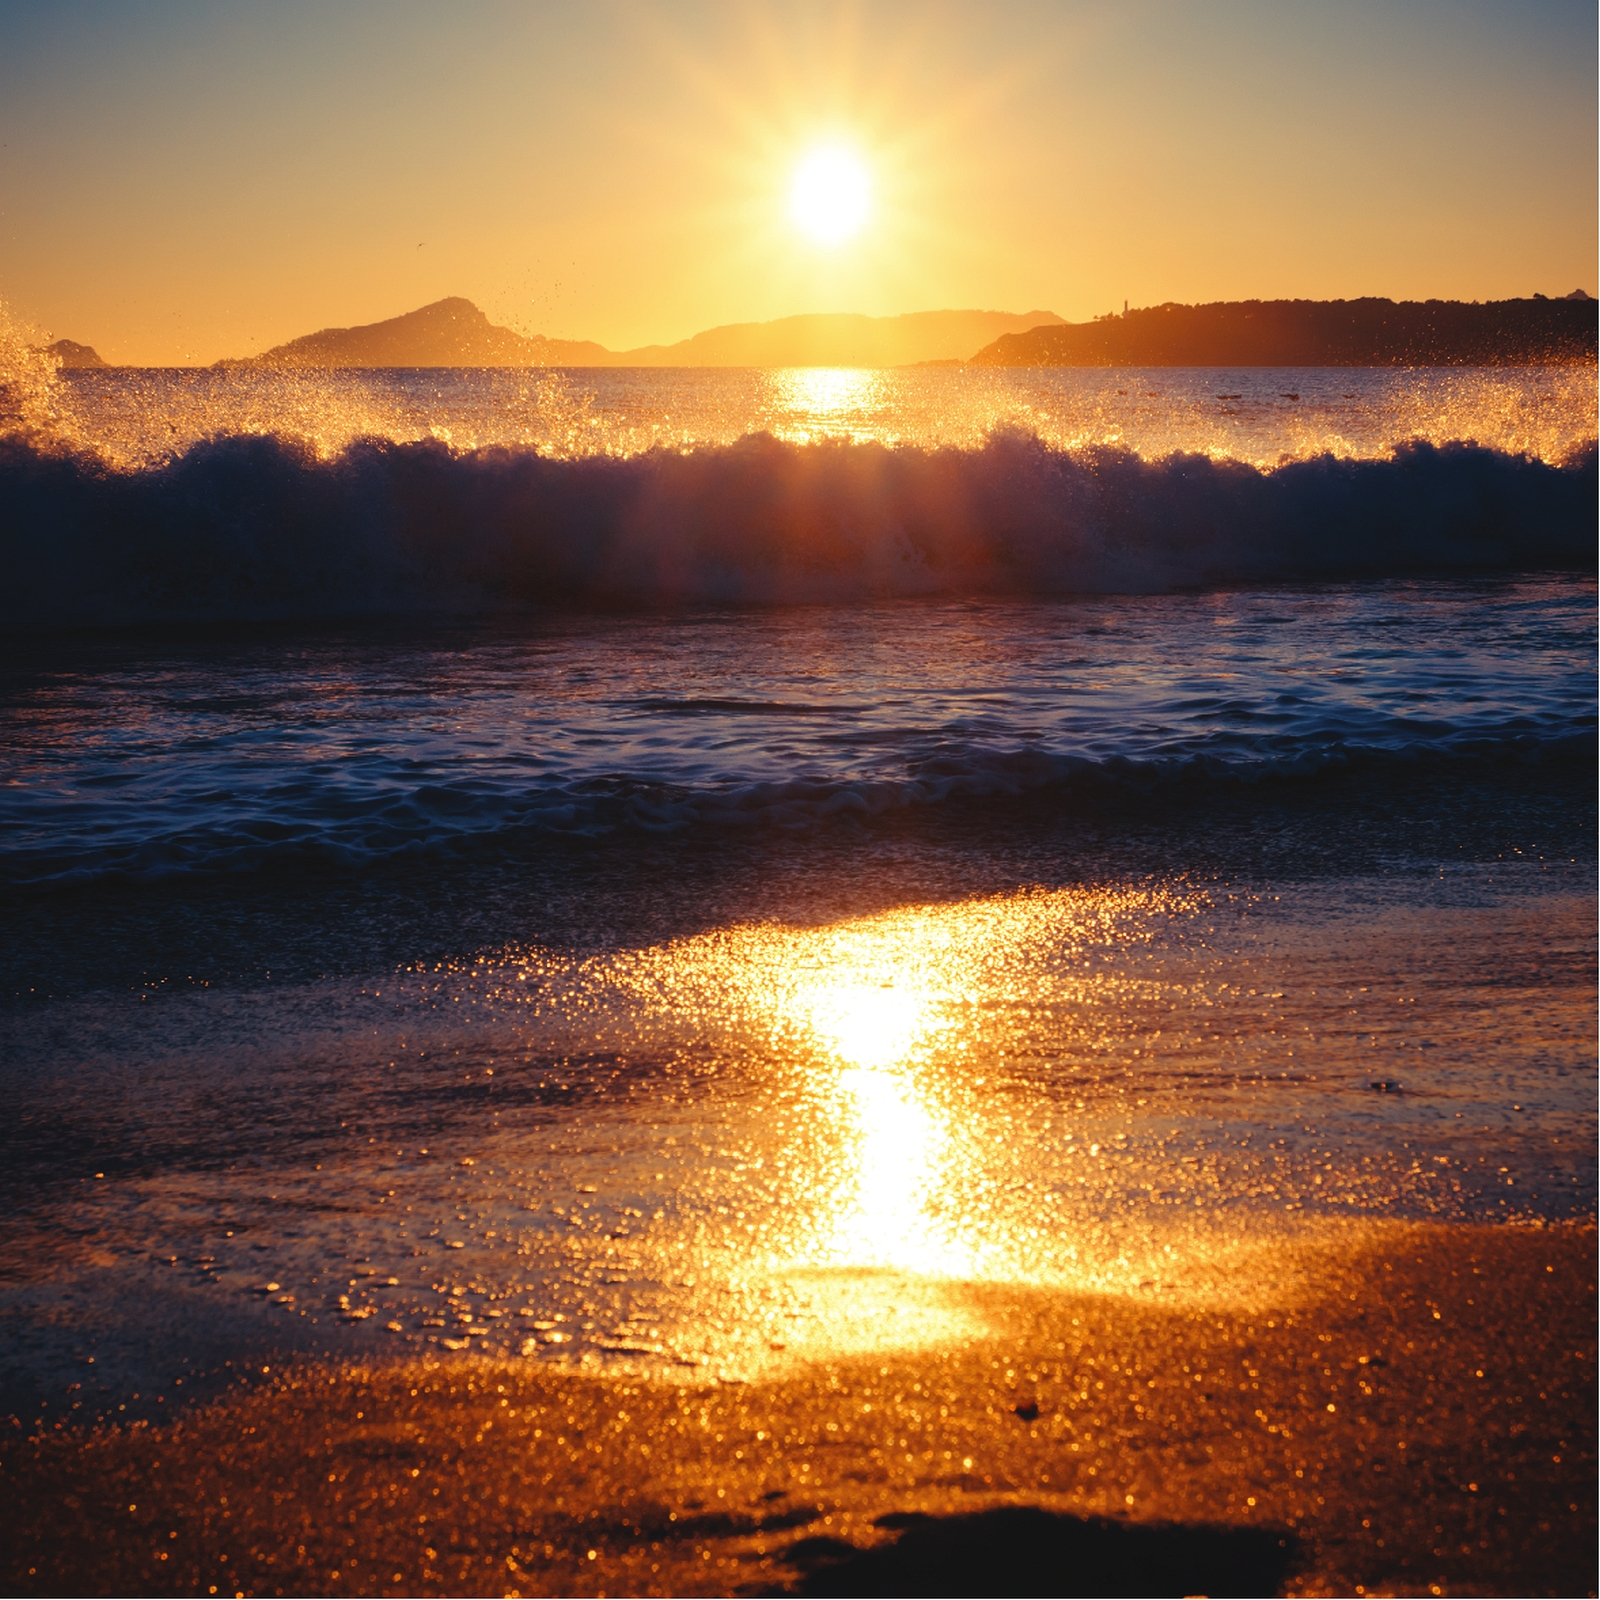 Golden Sunset Over Beach Home Office Wall Artwork Decoration Posters, Square Signs